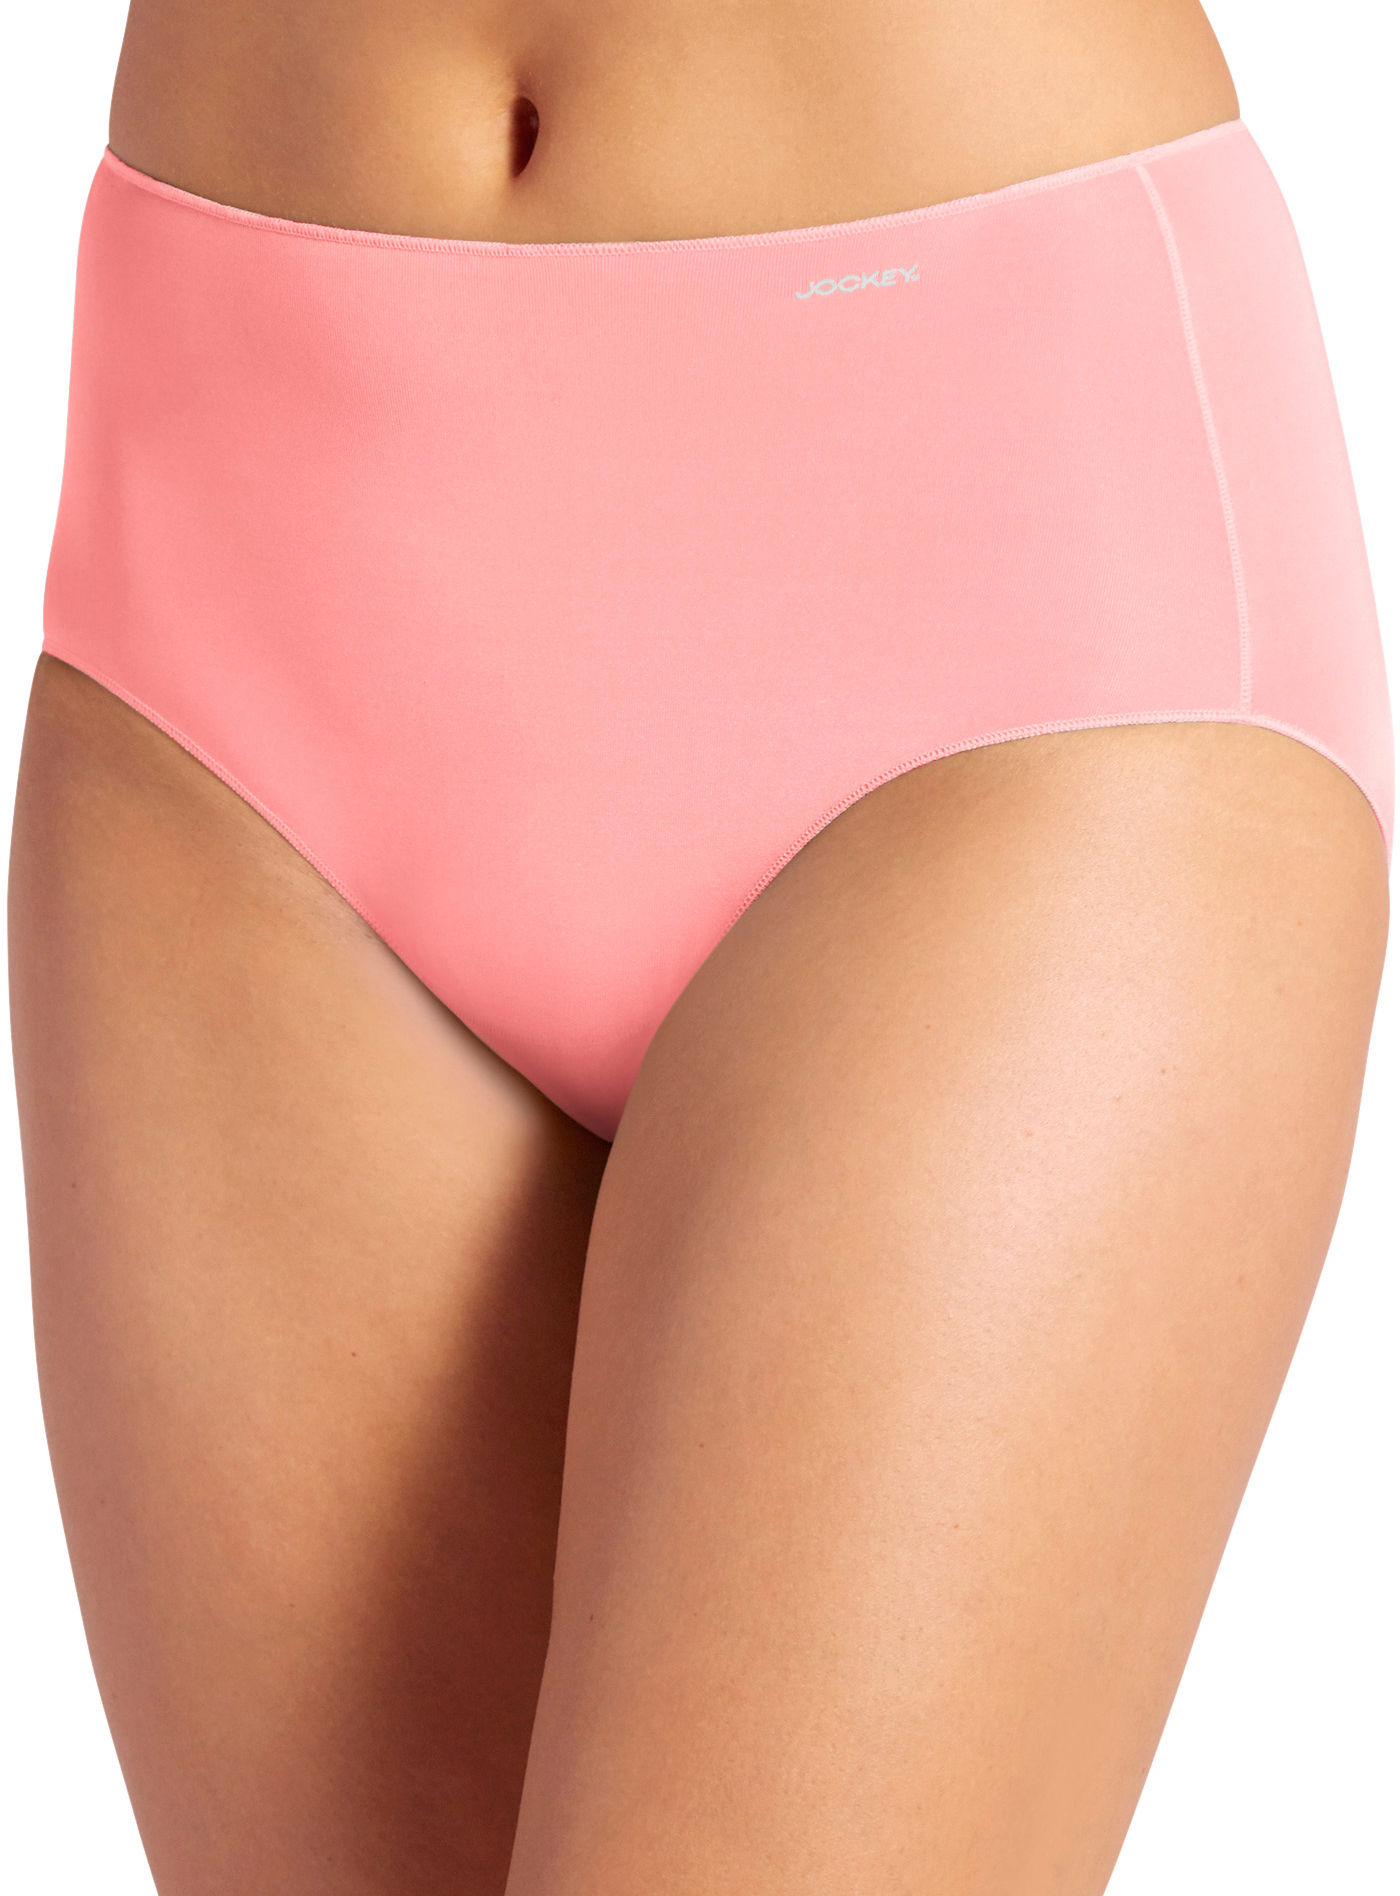 A line underwear: Target5% Off W/ REDcard · Same Day Store Pick-Up · Free Shipping $35+ · Free ReturnsStyles: Jackets, Active wear, Maternity, Dresses, Jeans, Pants, Shirts, Shorts, Skirts.